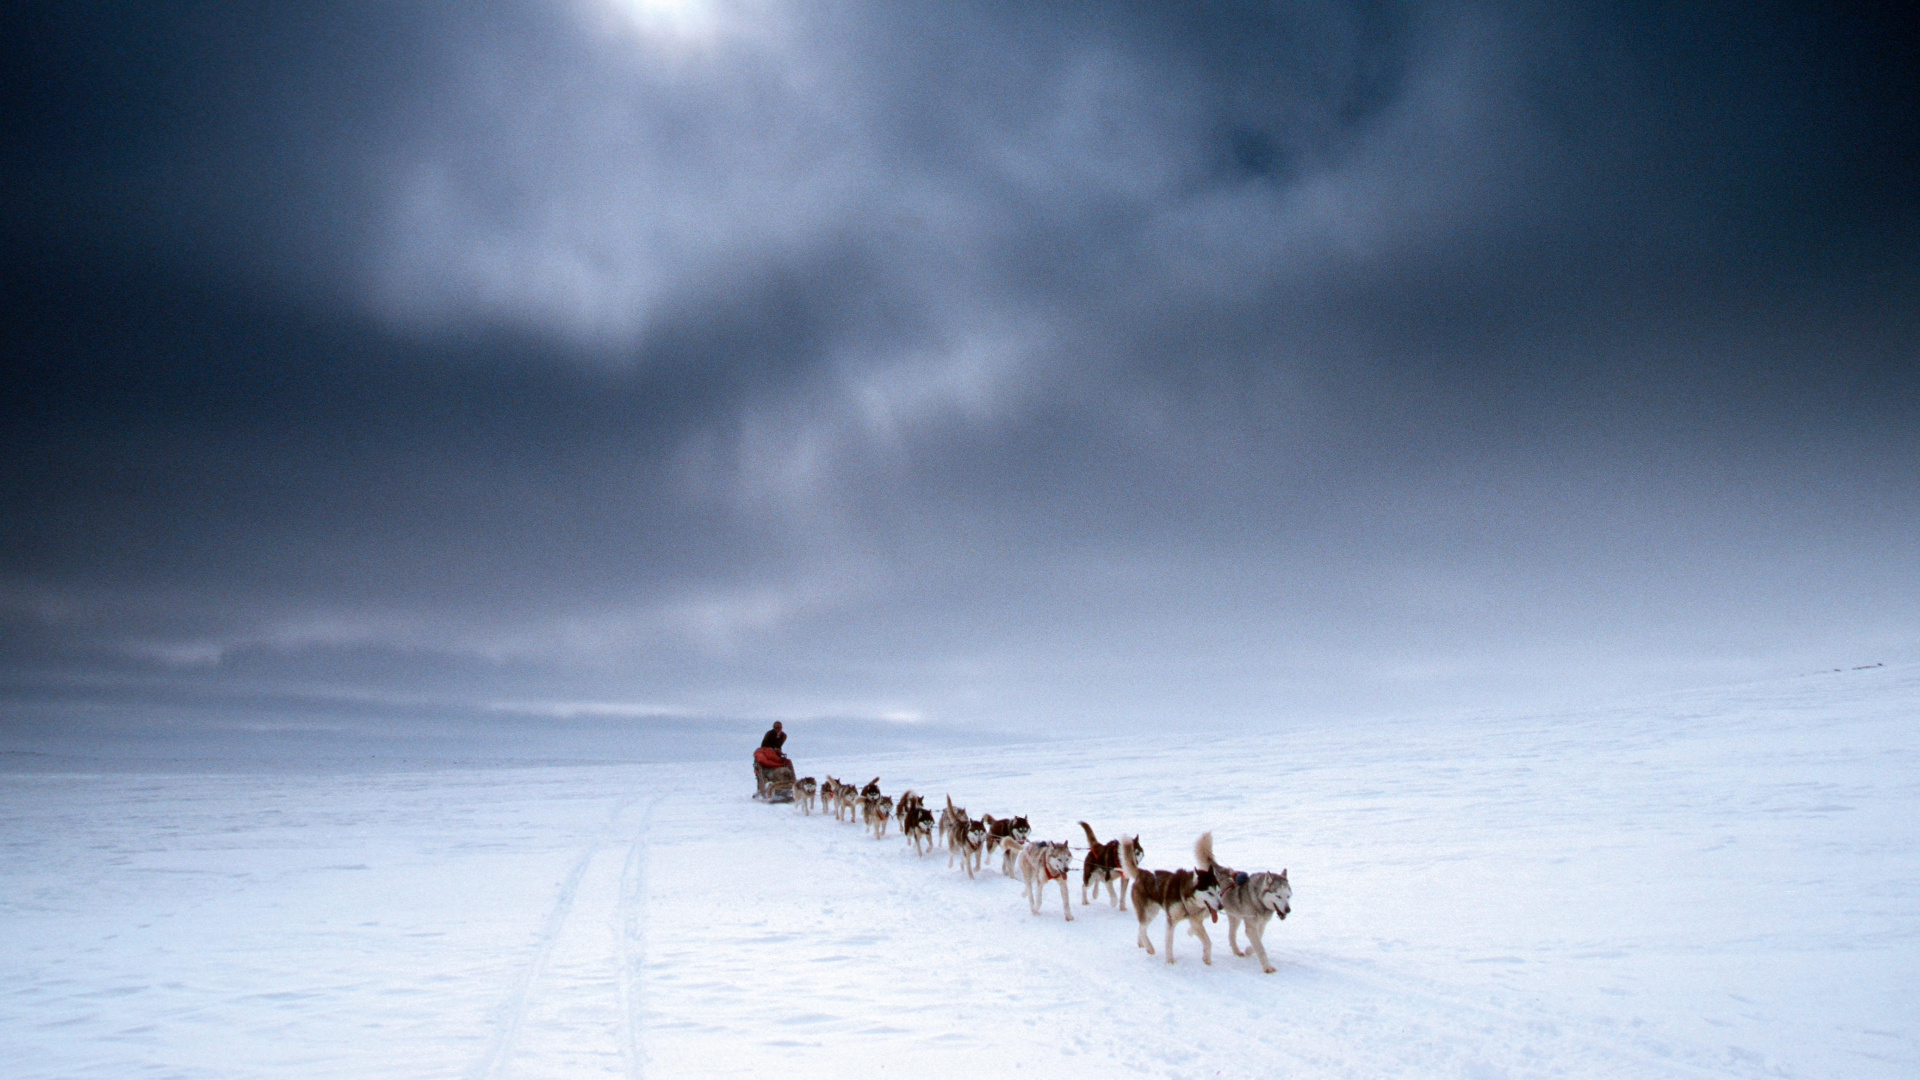 Siberian huskies pull a dogsled across the icy expanses on Nunavik